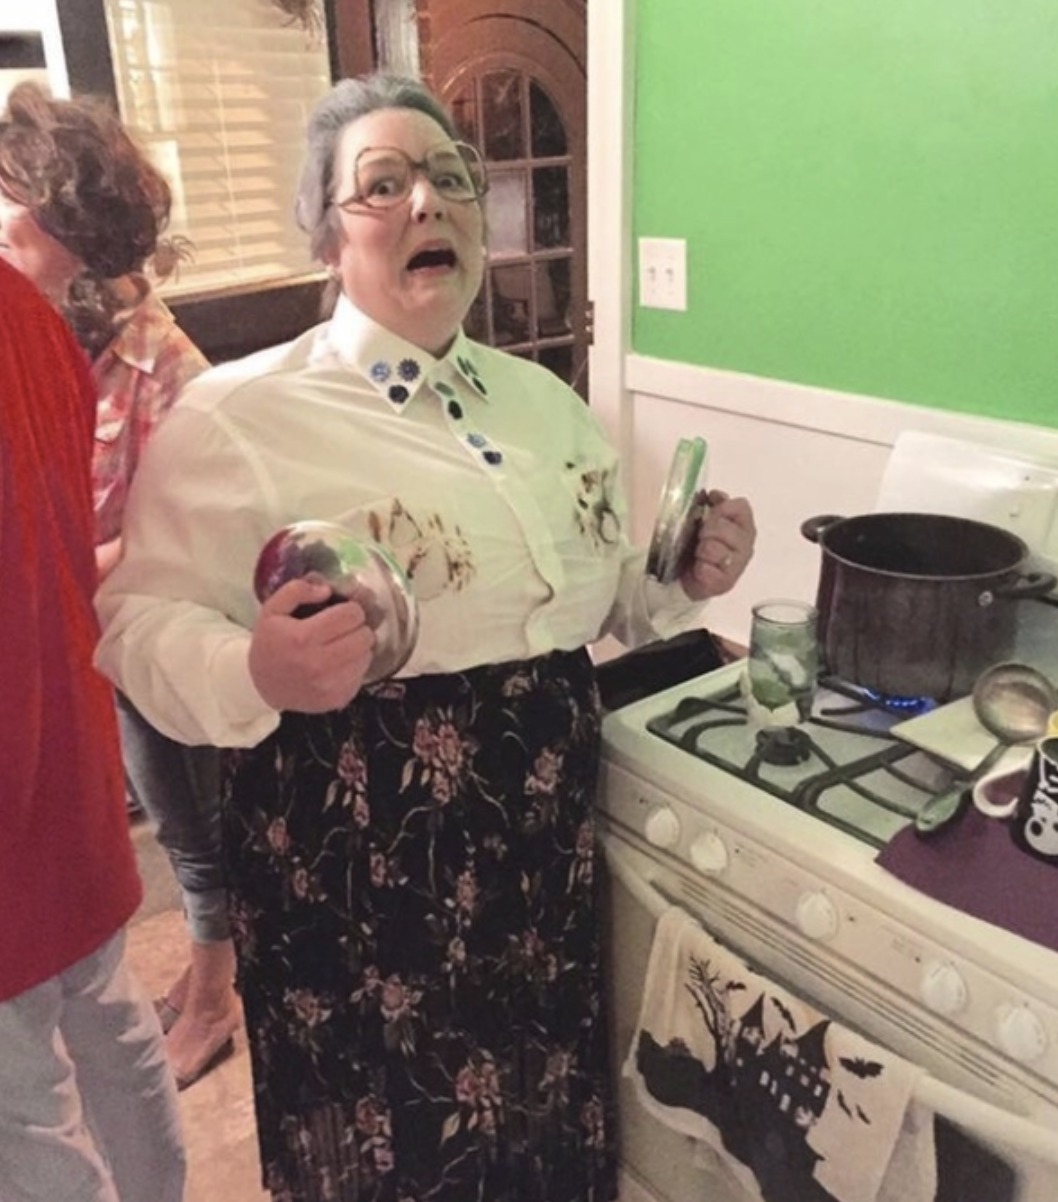 Someone dressed as Mrs. Doubtfire, holding two pan lids over their burnt shirt